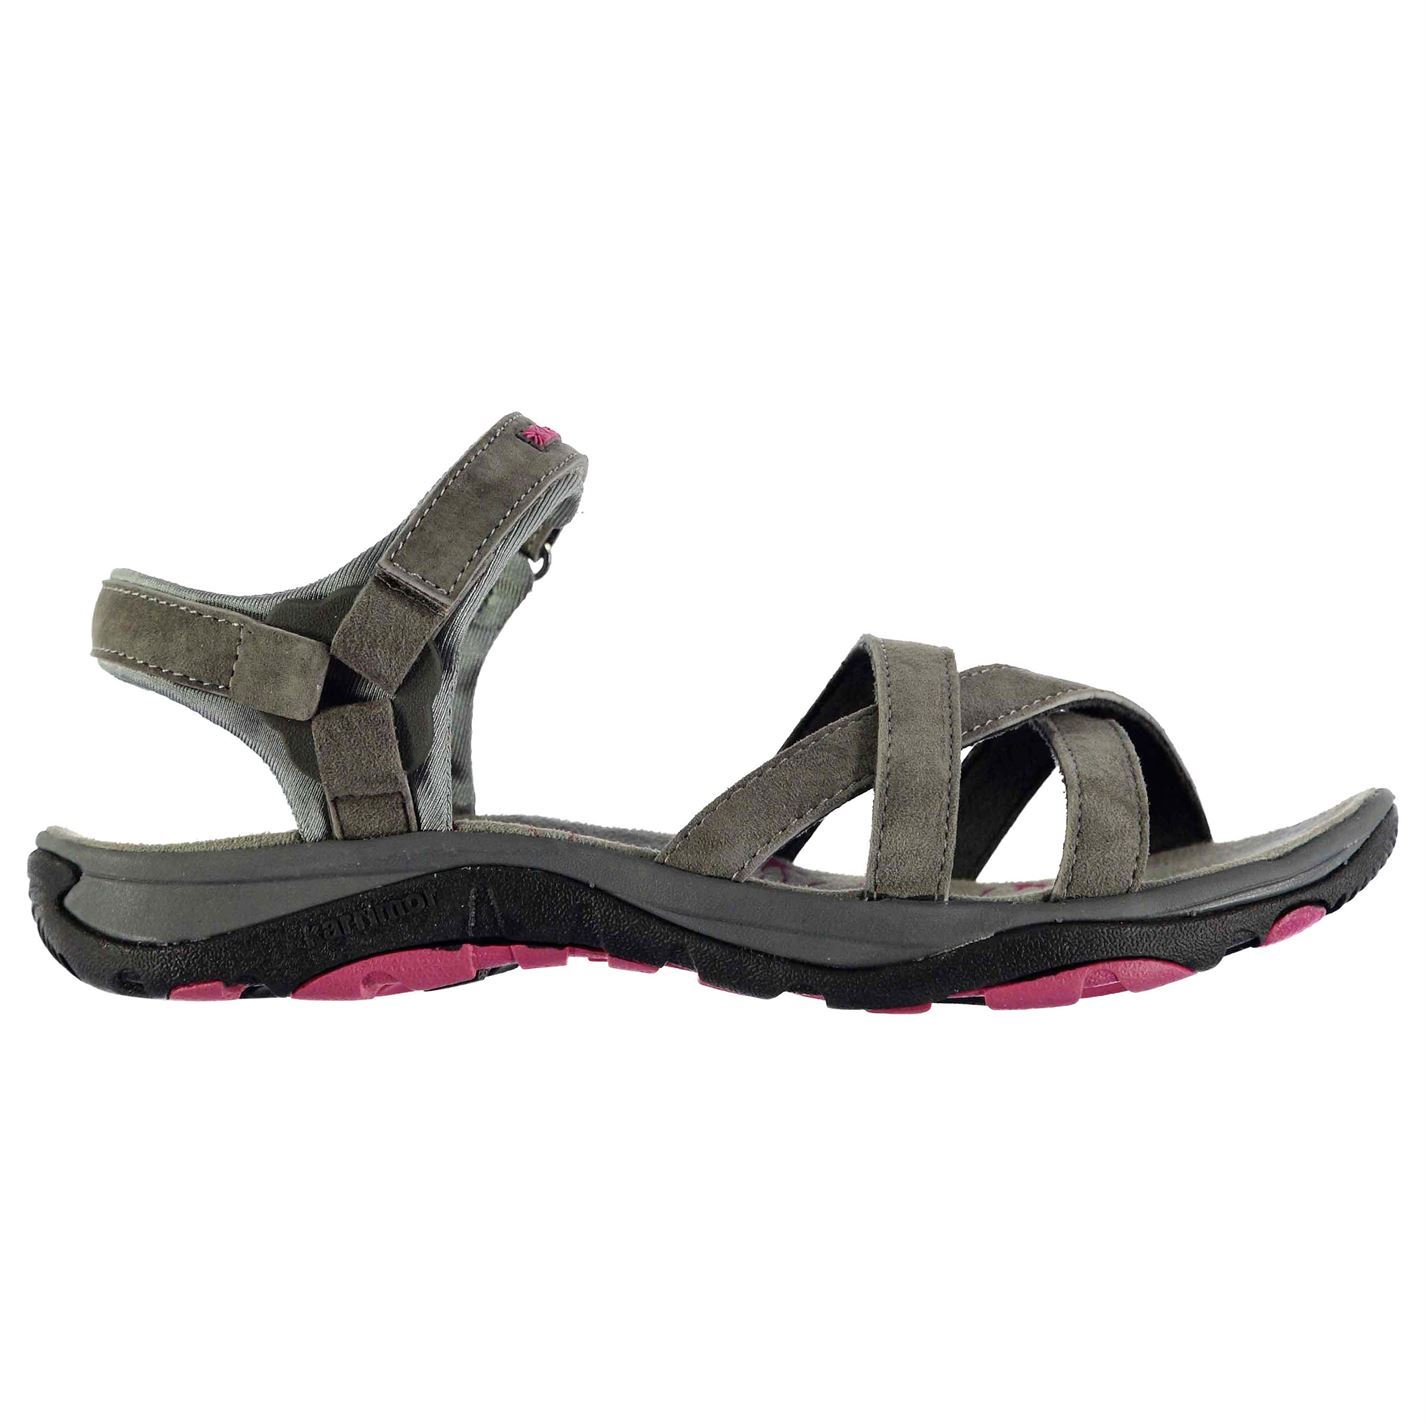 813a515c7248 Karrimor Womens Salina Leather Walking Sandals Shoes Touch and Close ...